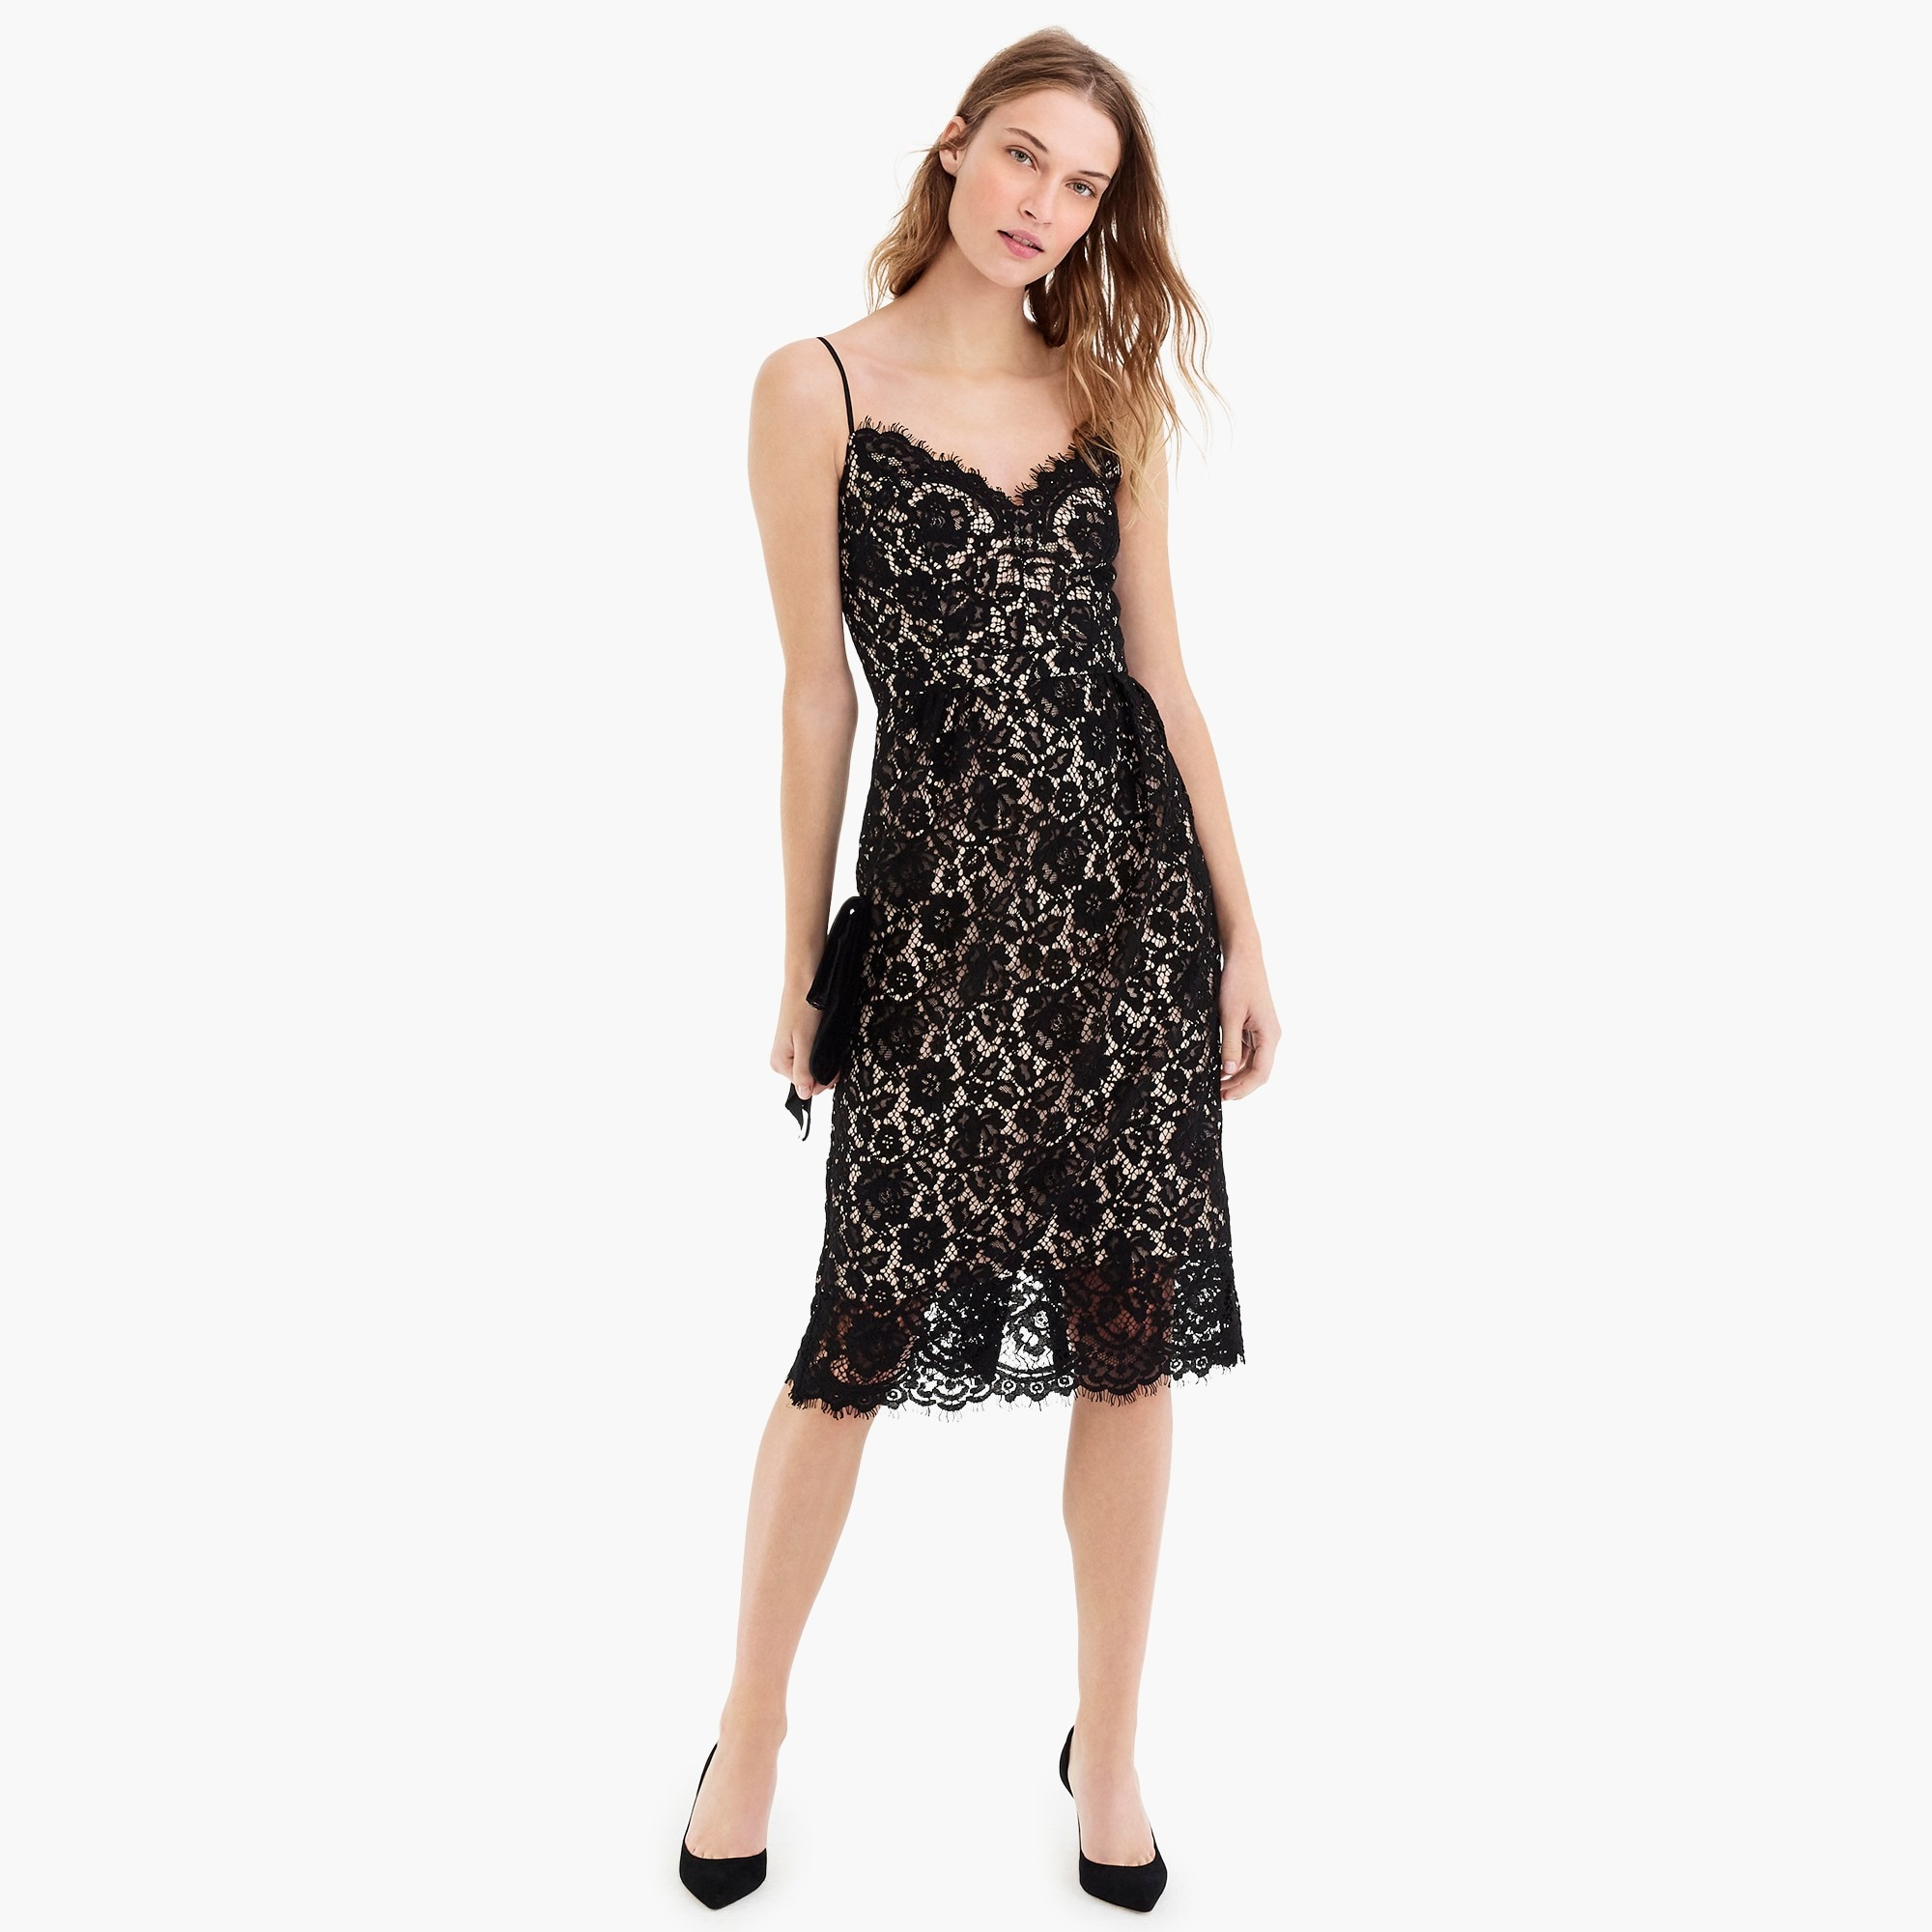 womens Spaghetti-strap dress in lace